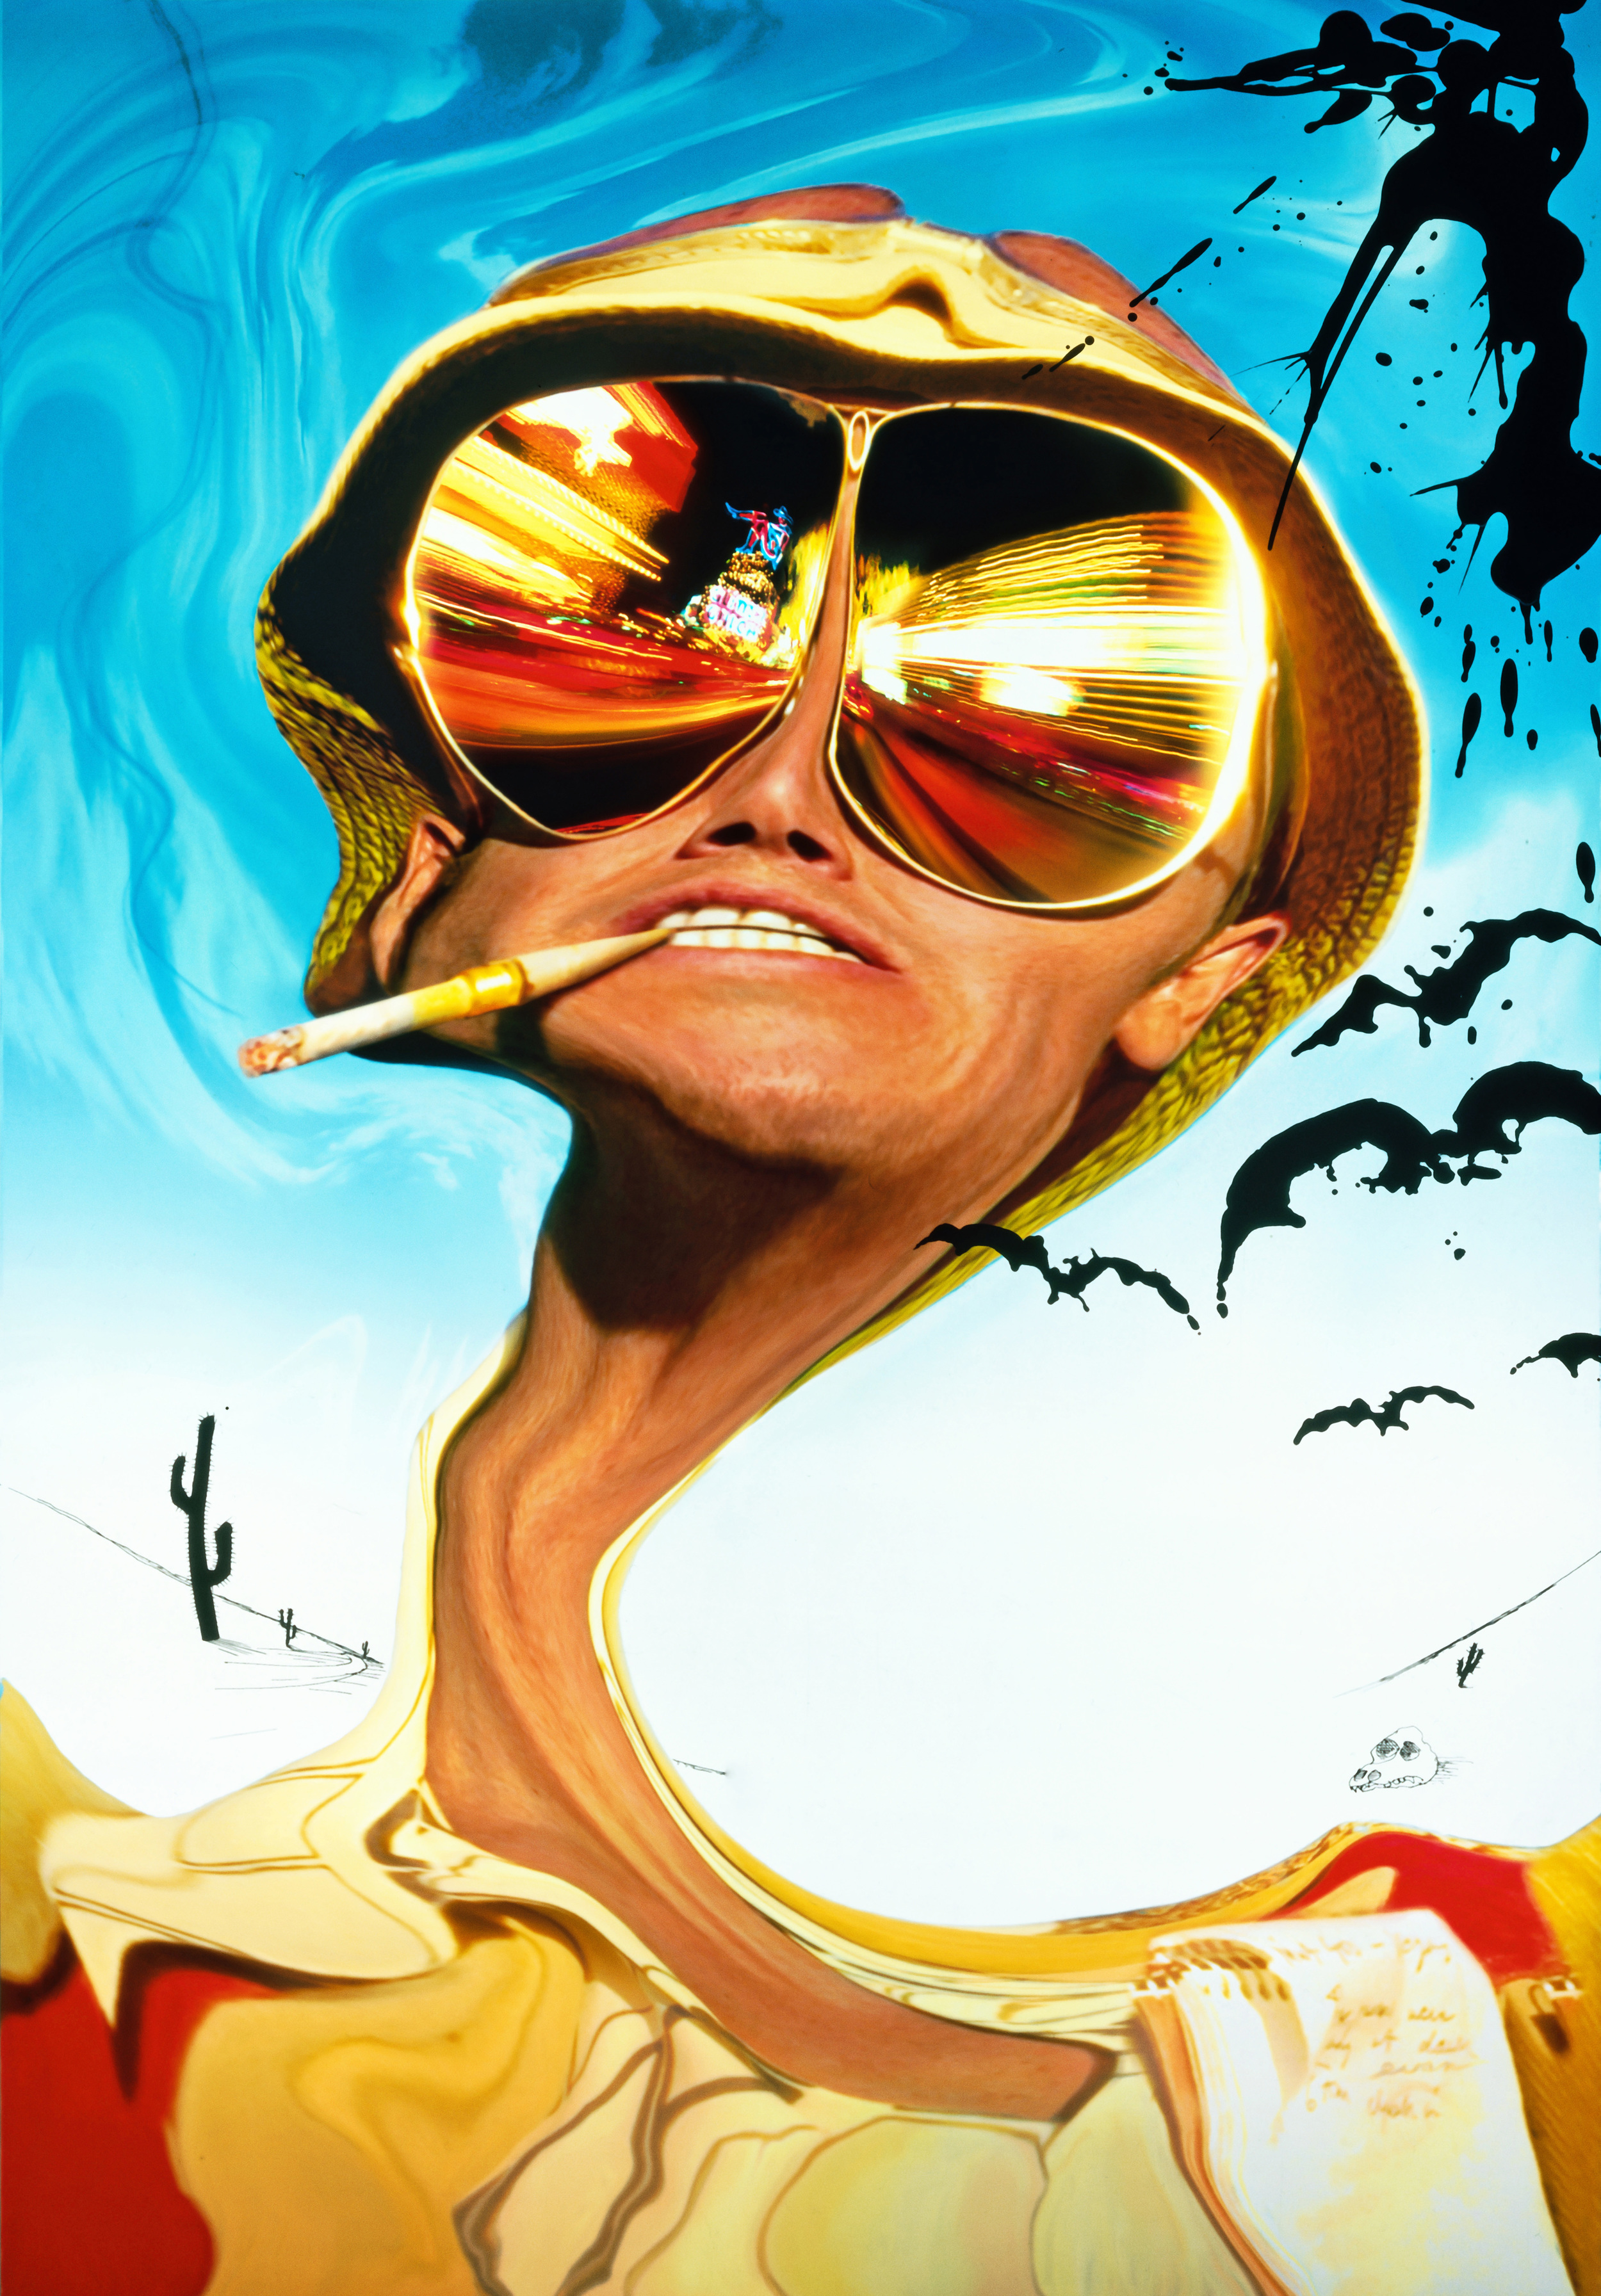 Fear and Loathing in Las Vegas (1998) - Terry Gilliam